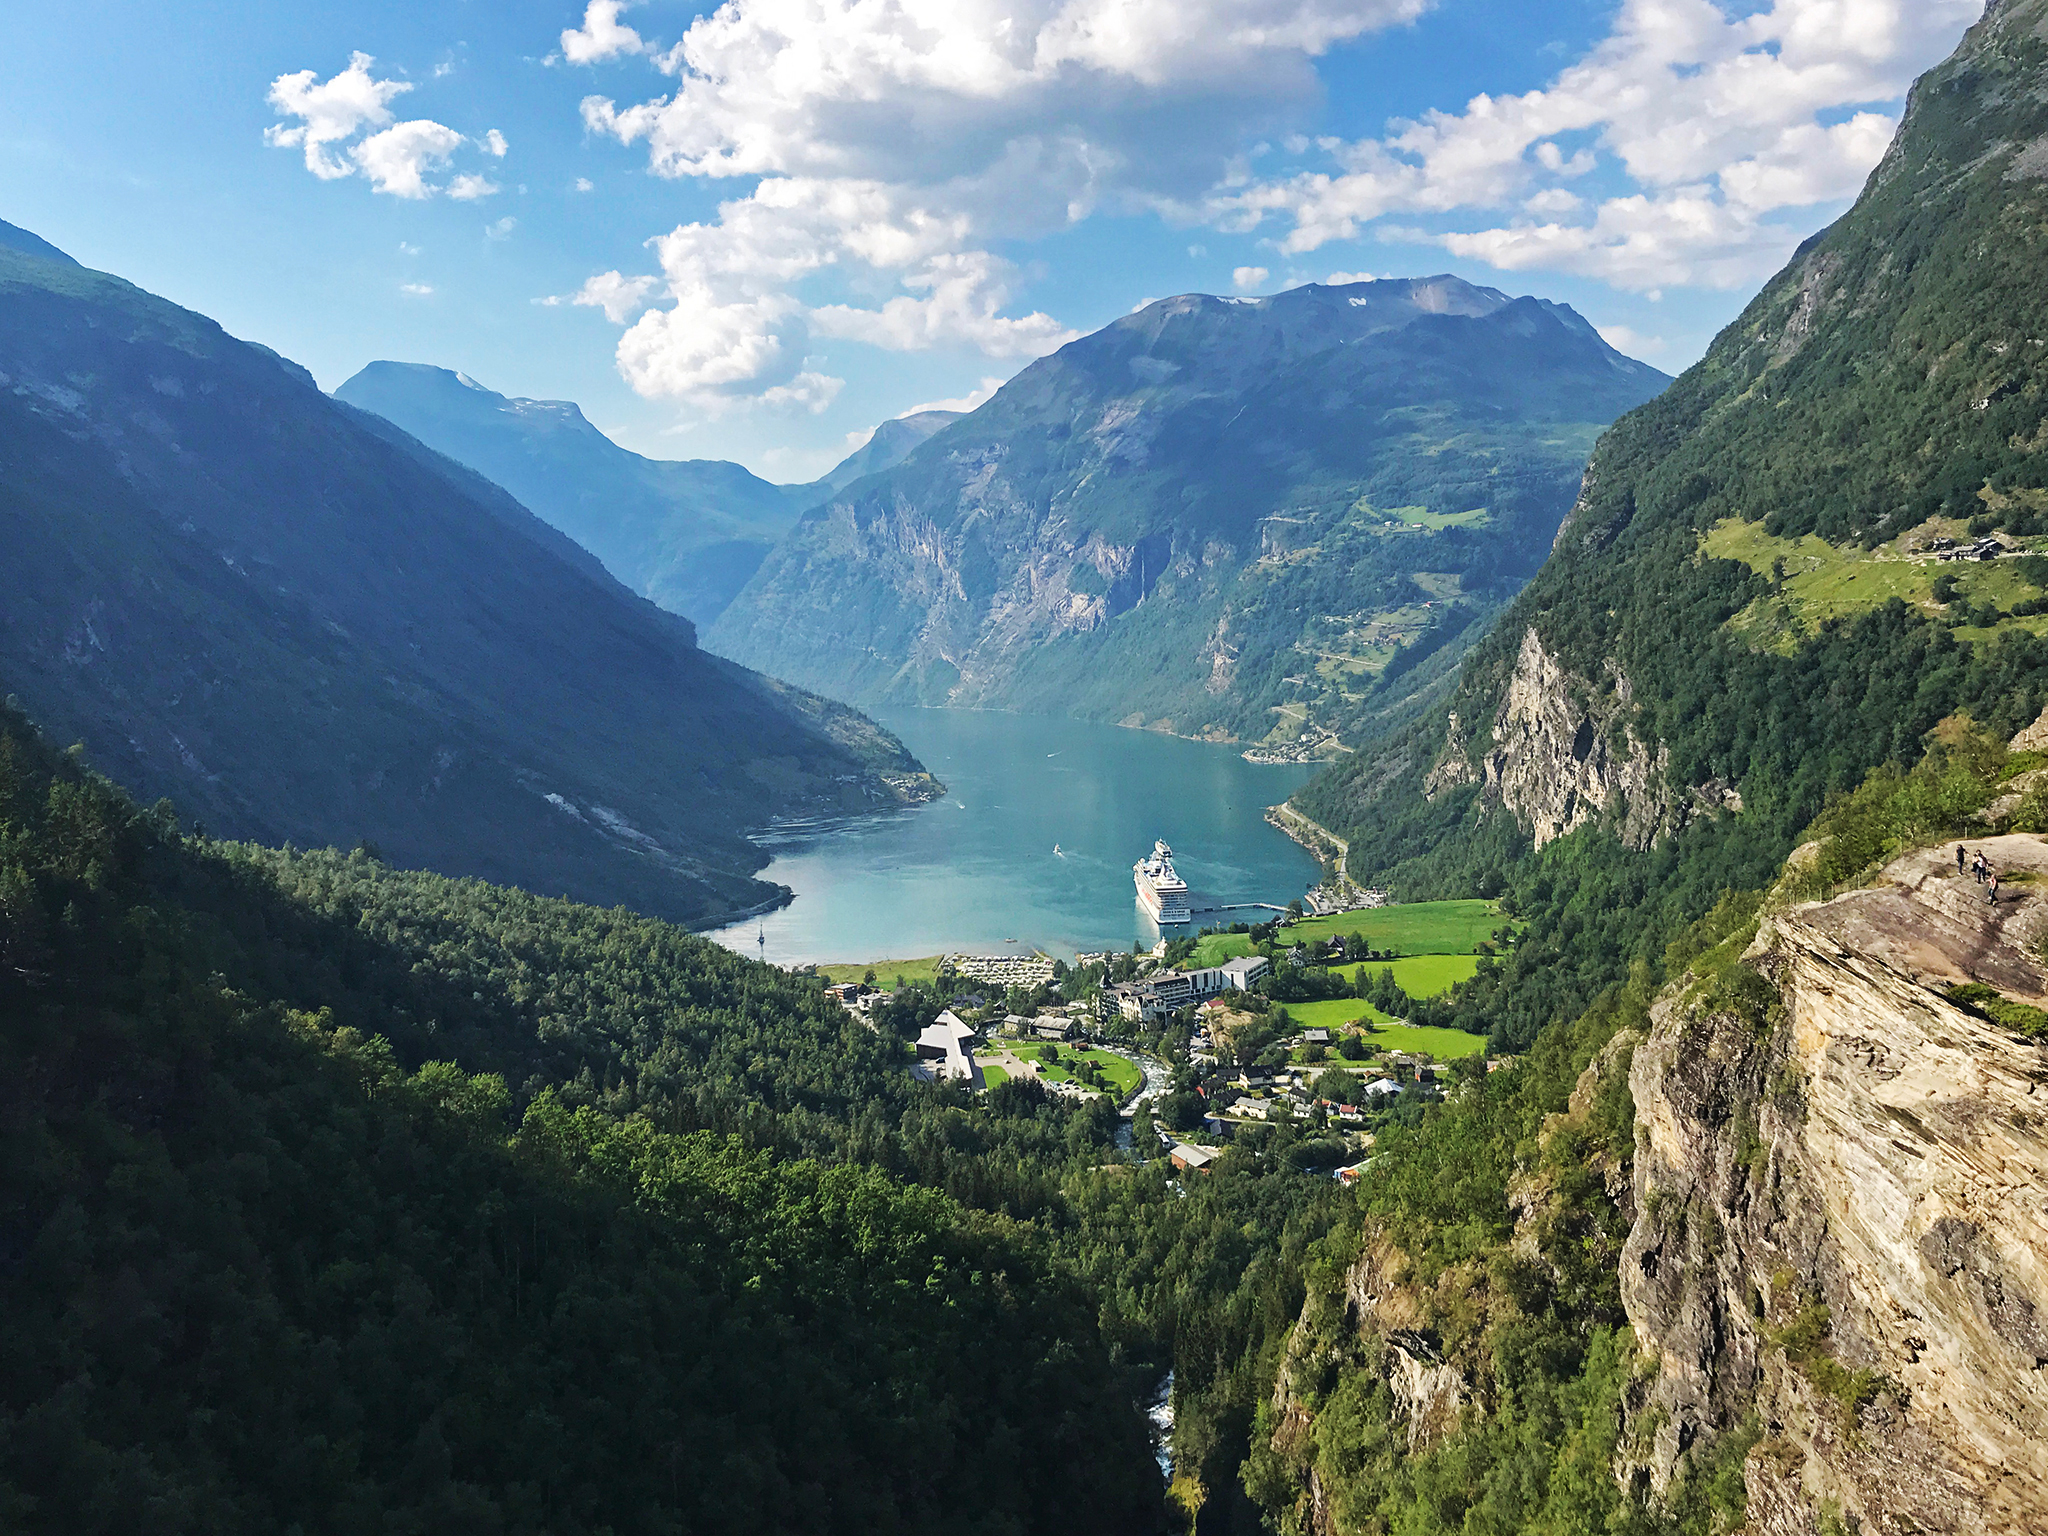 Geiranger and Geirangerfjord from the south side